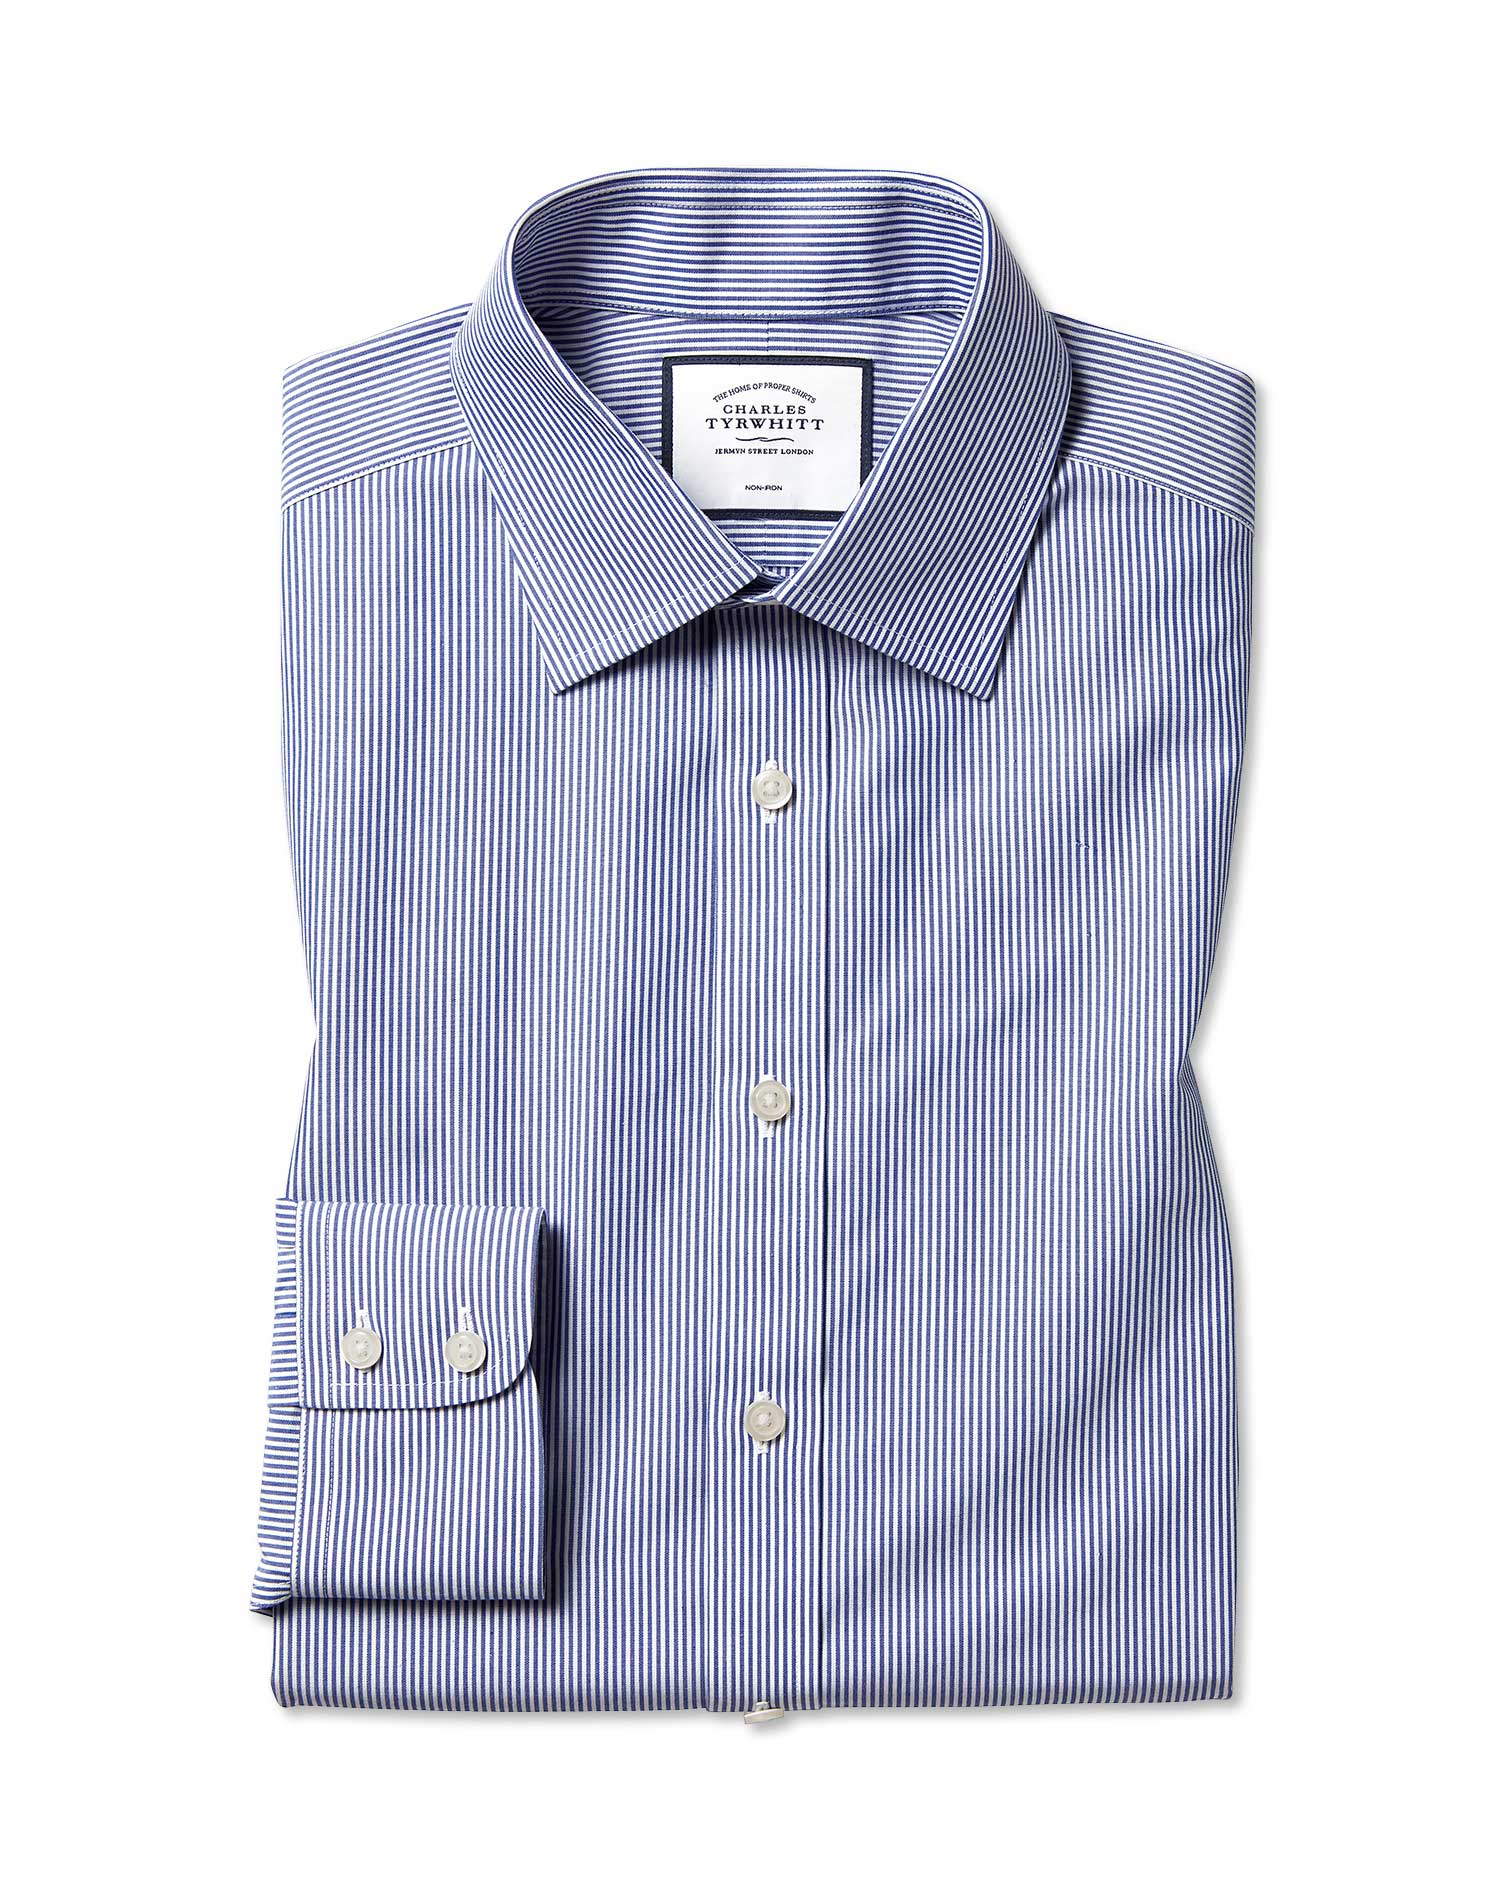 Classic Fit Non-Iron Bengal Stripe Navy Cotton Formal Shirt by Charles Tyrwhitt